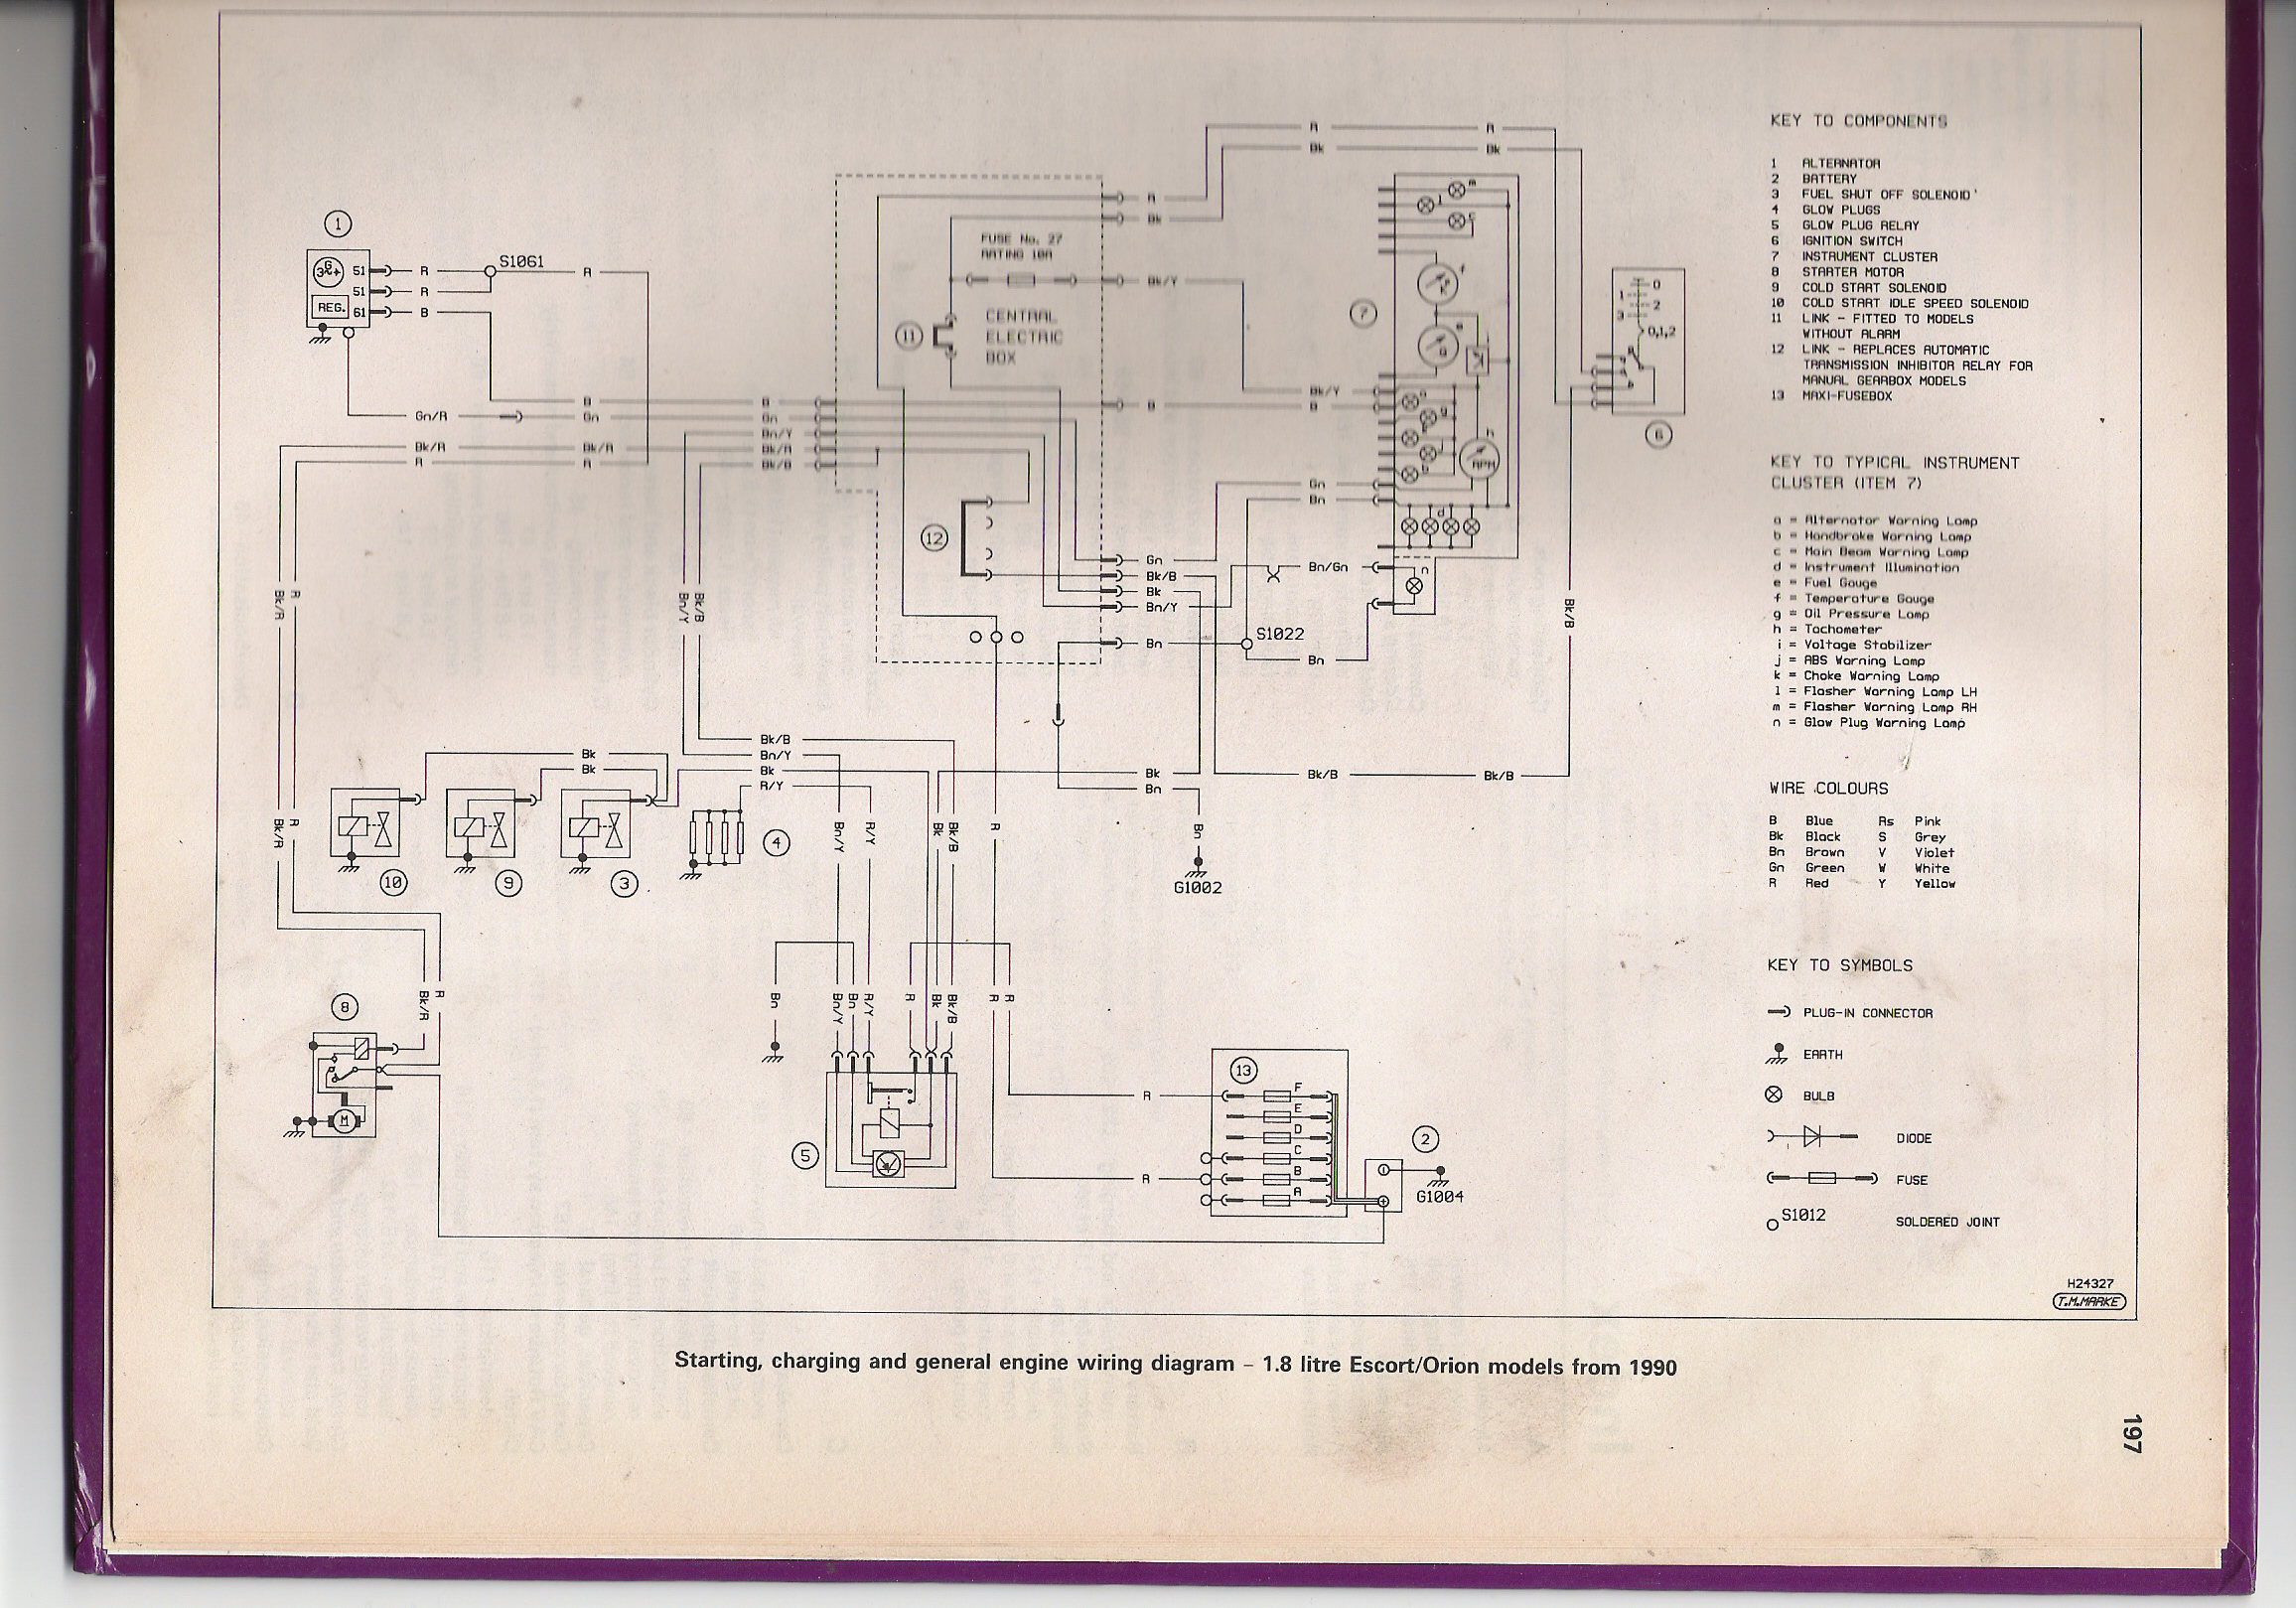 fordwiringdl mk4 wiring diagram wiring diagram symbols \u2022 wiring diagrams j 1999 ford escort wiring diagram pdf at edmiracle.co